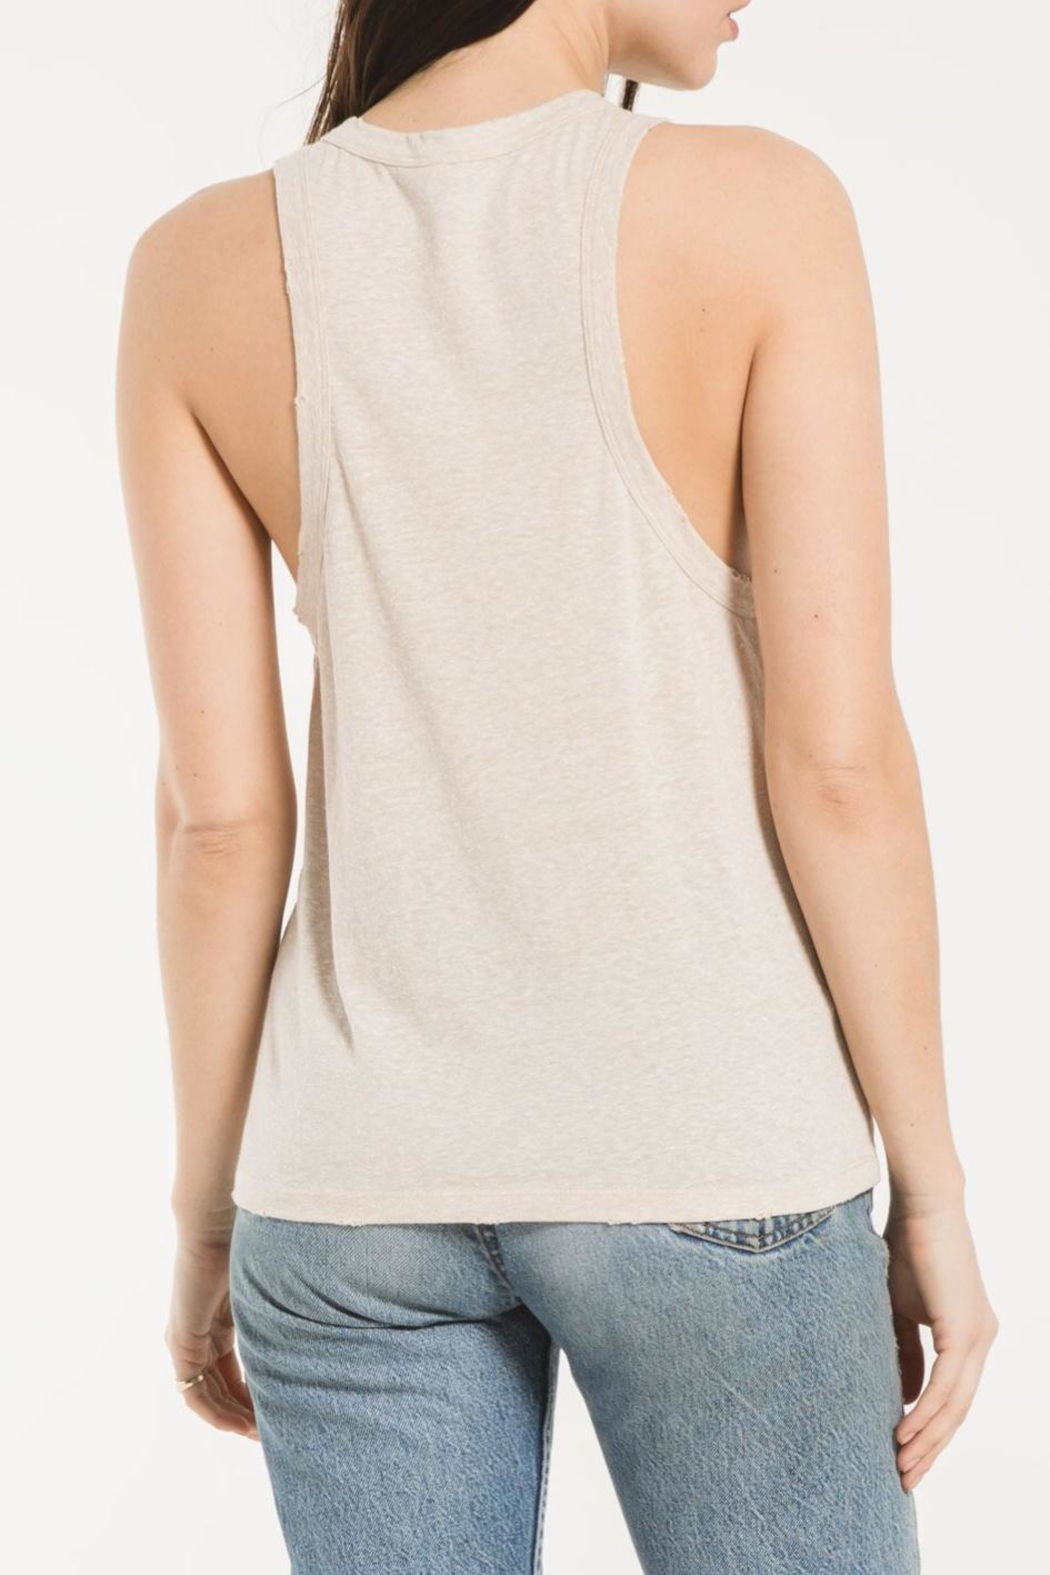 z supply Triblend Race Tank - Back Cropped Image